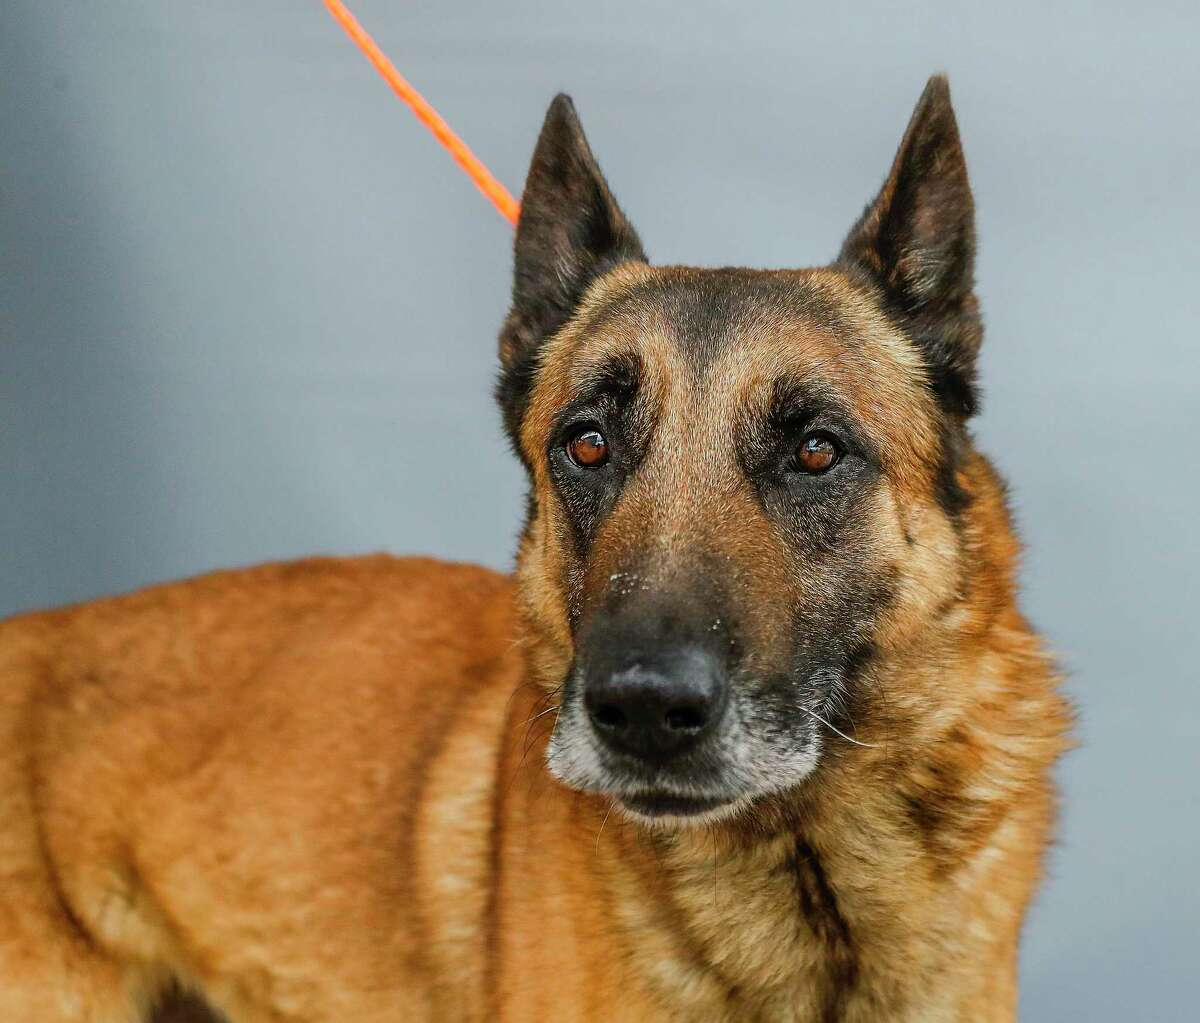 Waffle (A569190) is a 7-year-old, male, Belgian Malinois mix available for adoption from Harris County Pets. Bailey was brought into the shelter as a stray. He is well-mannered and sweet. He would love to find a loving forever home. Photographed on Wednesday, March 10, 2021, in Houston.